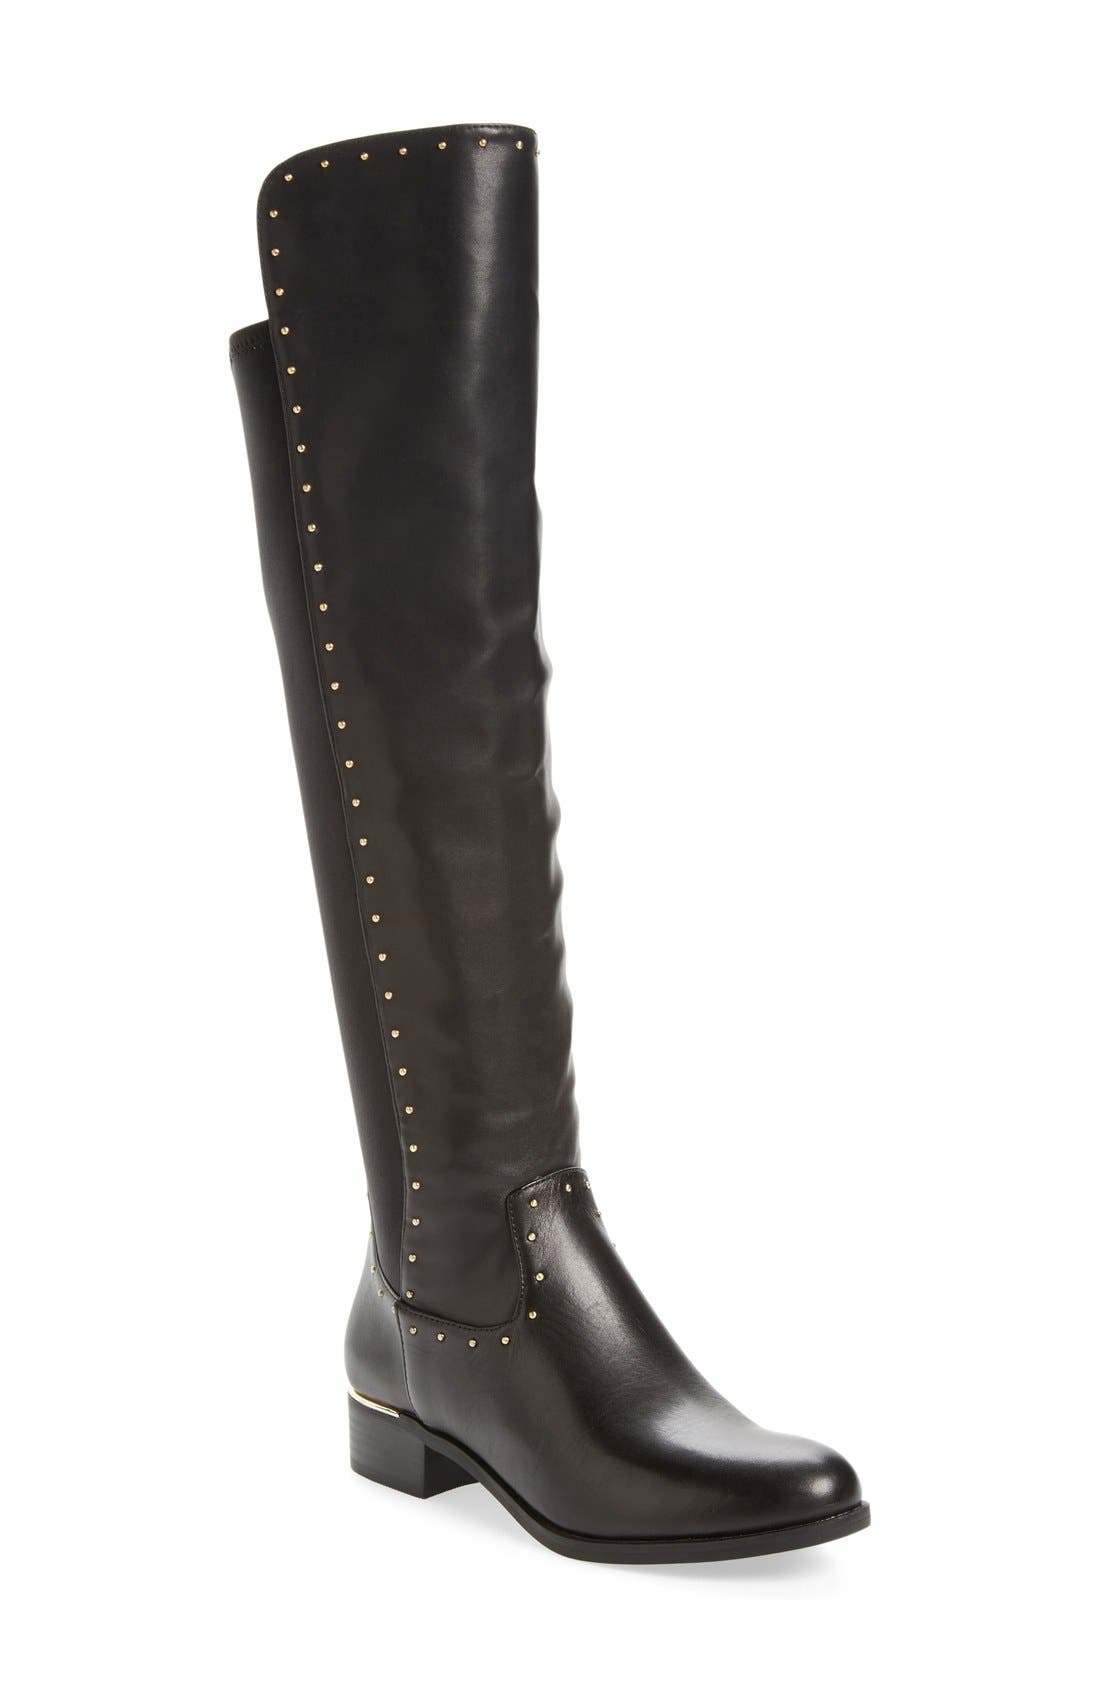 CALVIN KLEIN Cynthia Studded Riding Boot, Main, color, 001